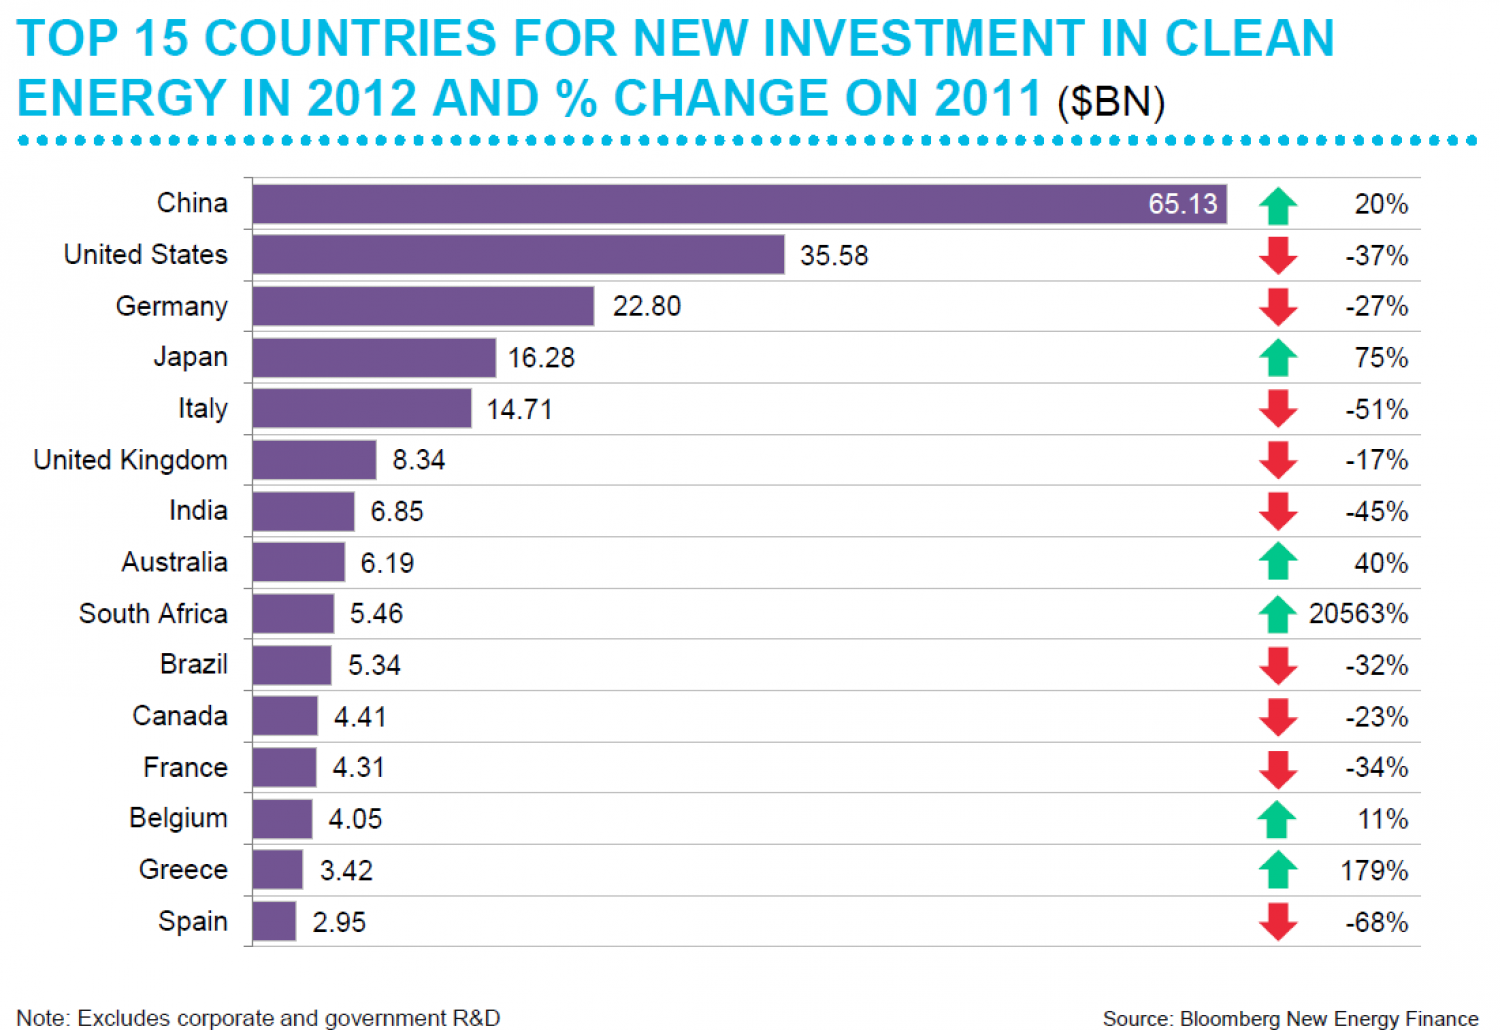 Top 15 Countries for new investment in Clean Energy in 2012 and % change on 2011 Infographic